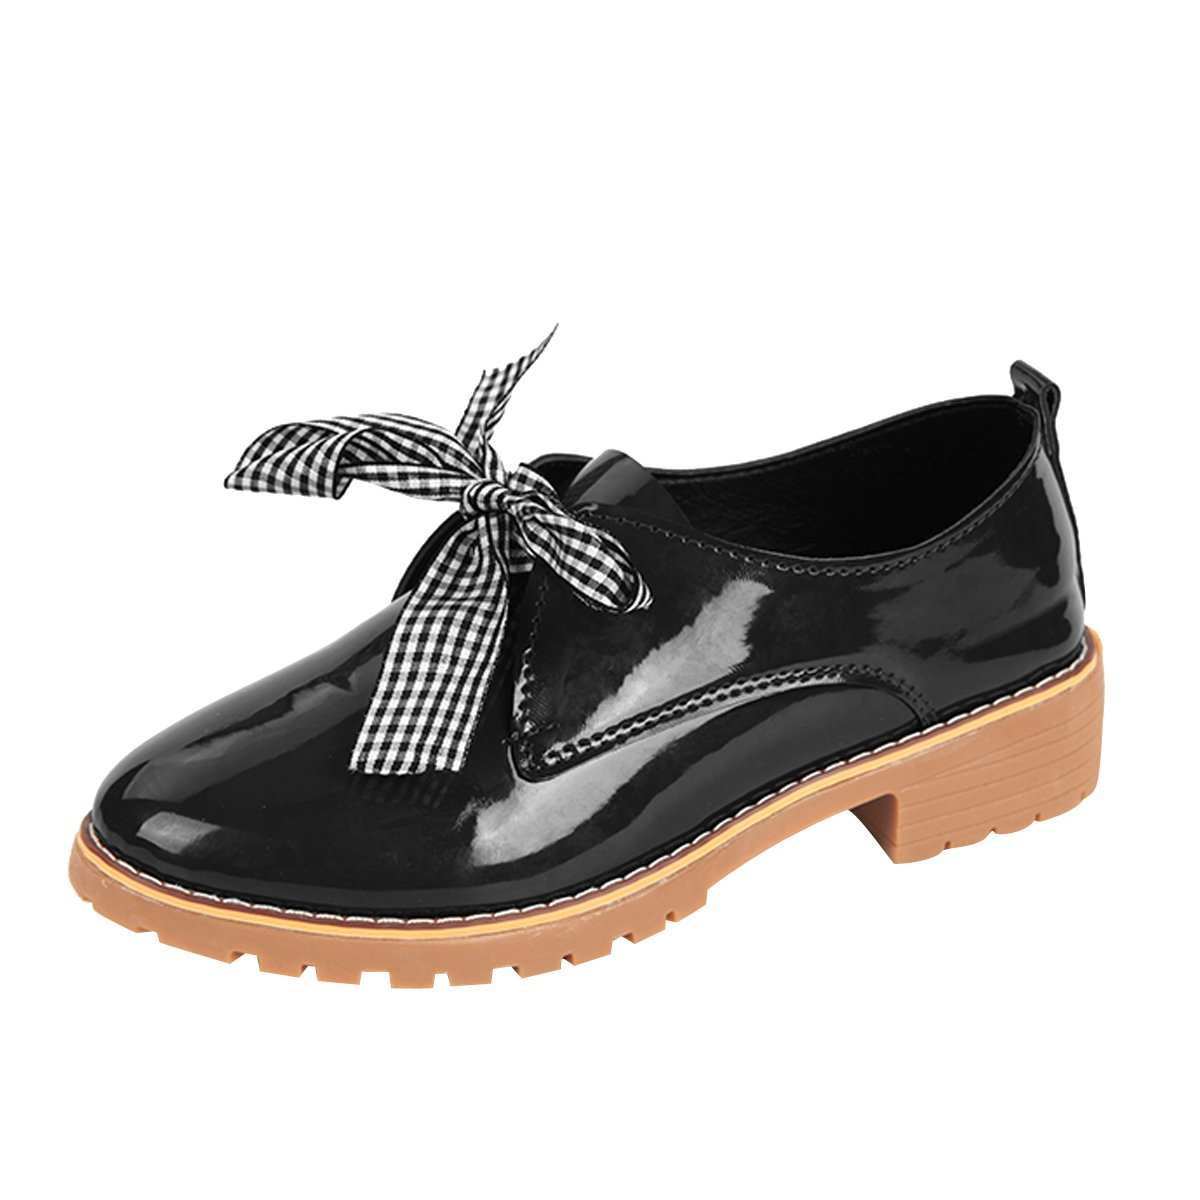 Dear Time Bowknot Oxfords Women's Lace Up Poined Toe Flat Brogue Shoes Black US 6